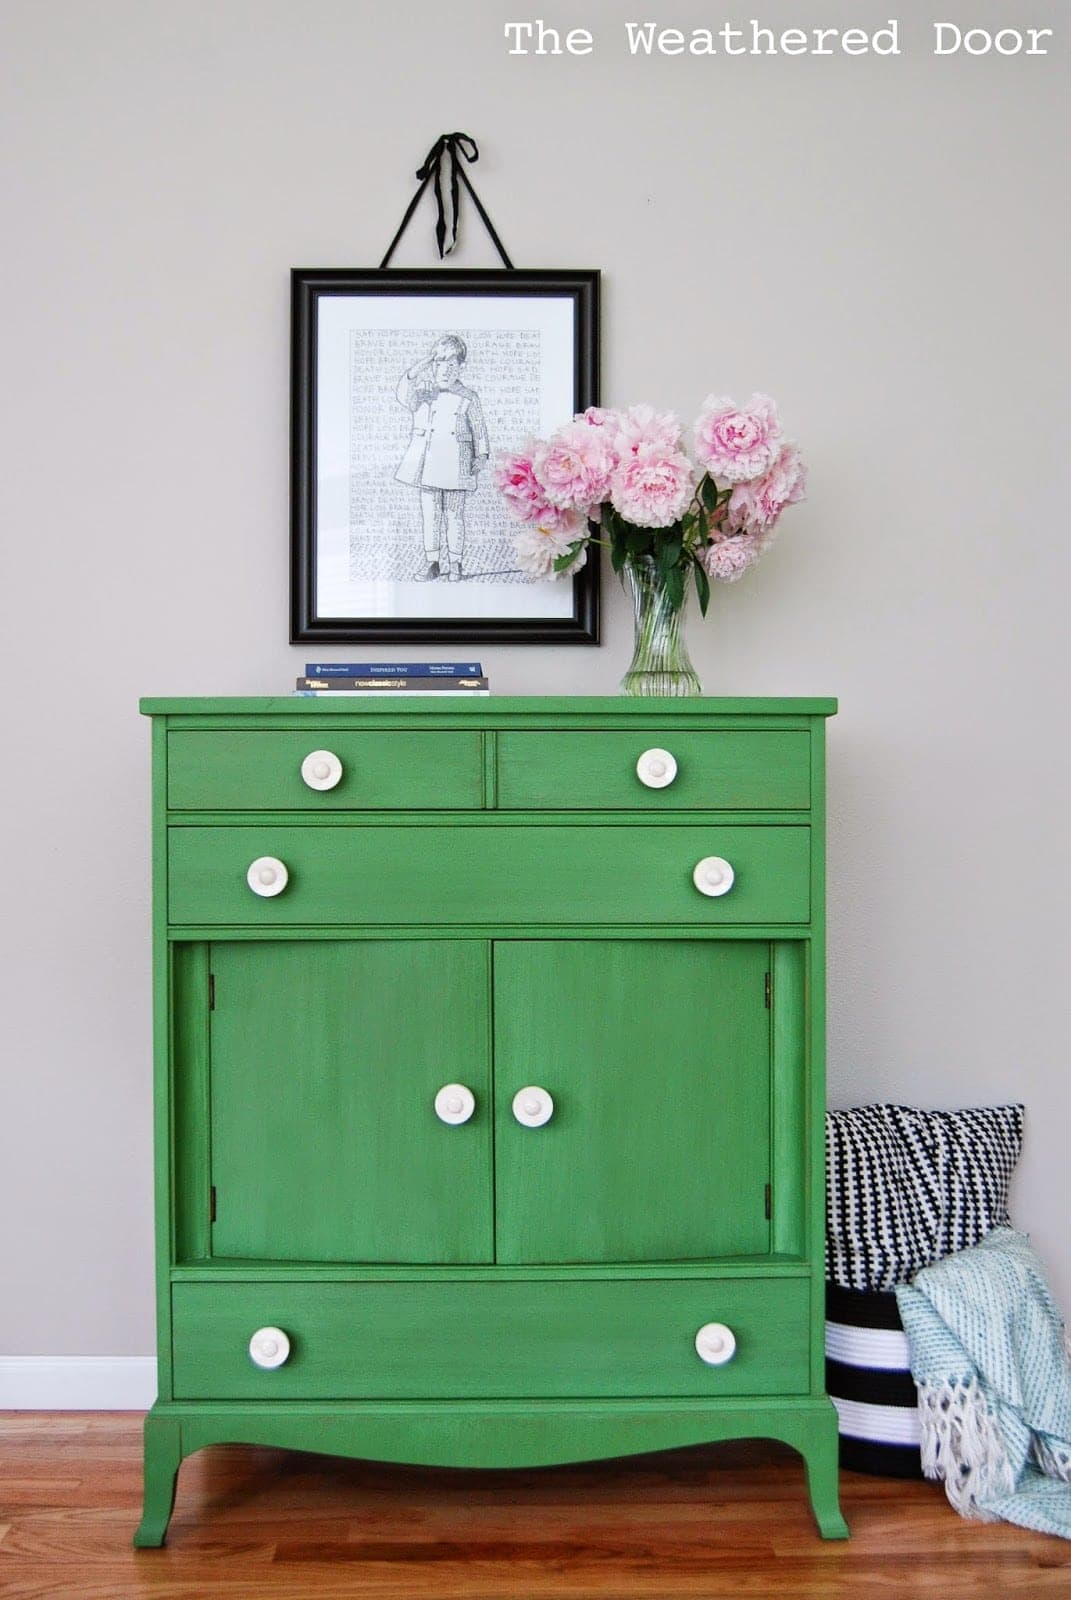 A green dresser with flowers and art on the wall on top